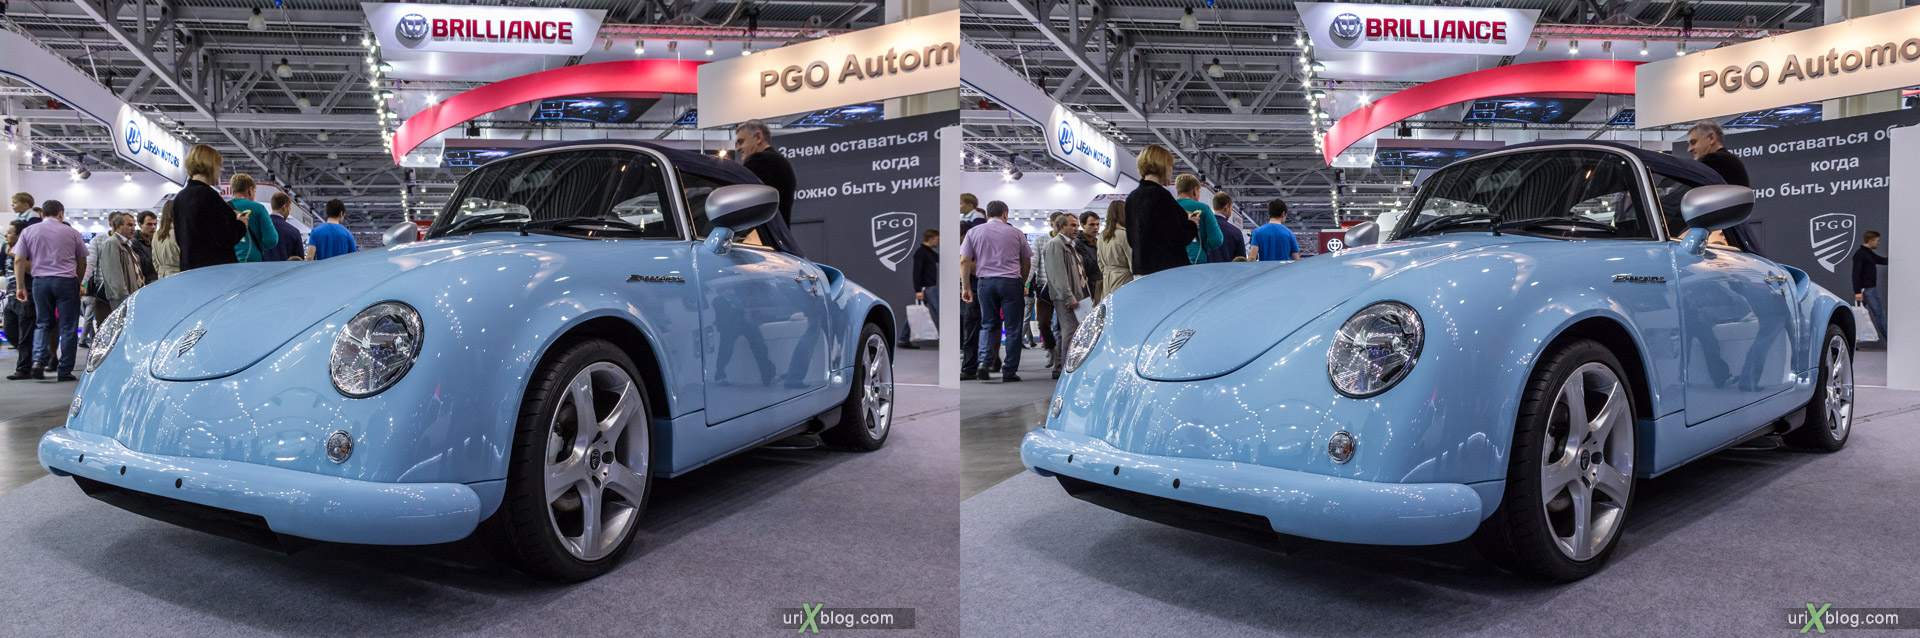 2014, PGO Speedster 2, Moscow International Automobile Salon, MIAS, Crocus Expo, Moscow, Russia, augest, 3D, stereo pair, cross-eyed, crossview, cross view stereo pair, stereoscopic